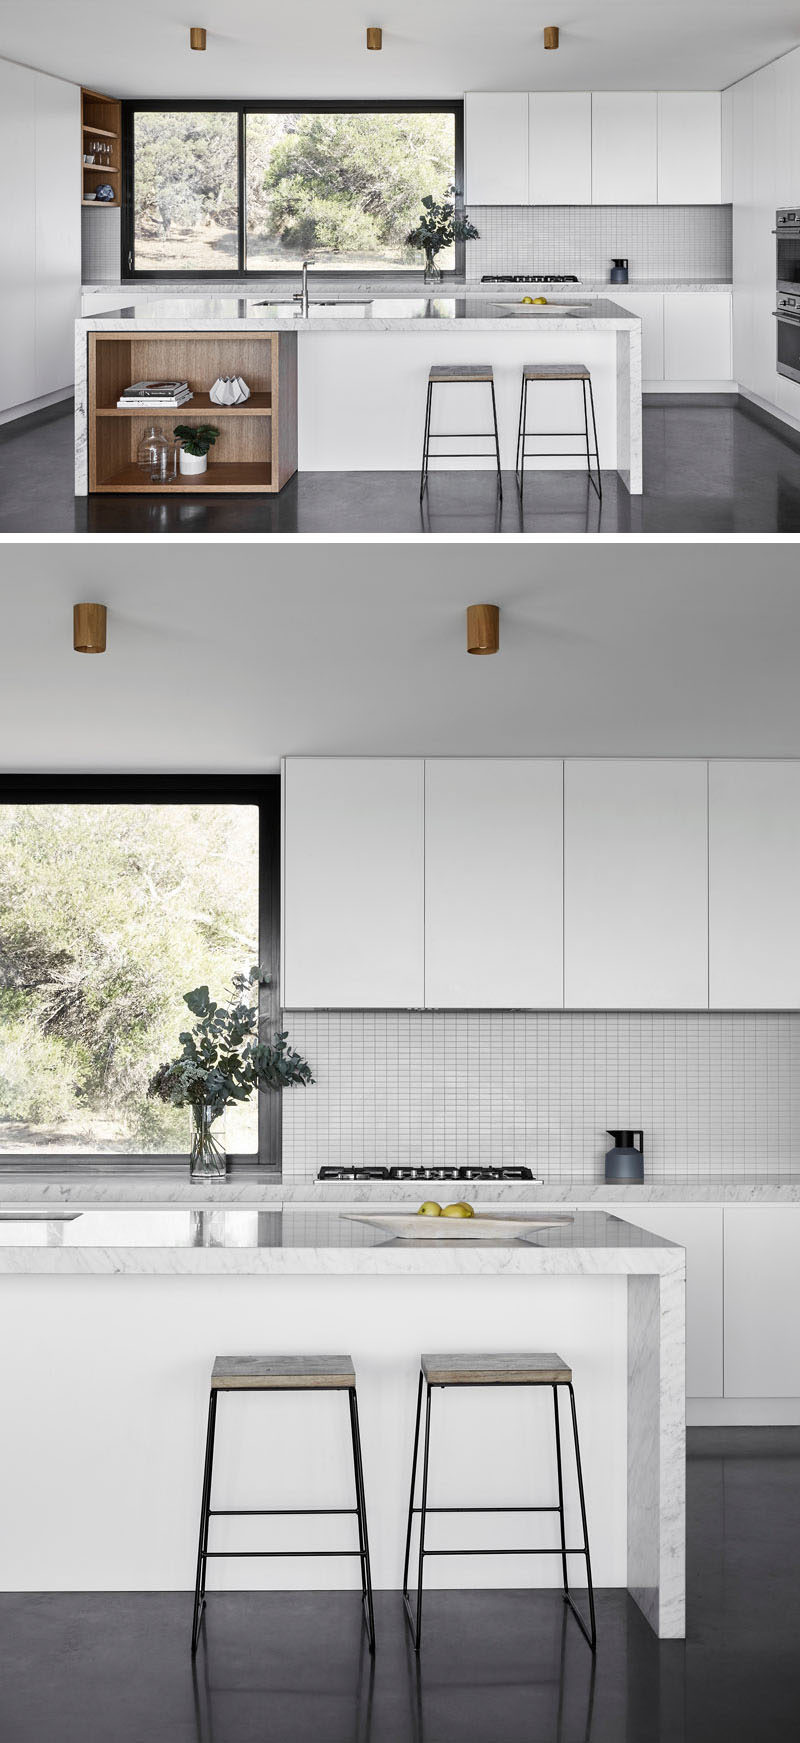 In this kitchen, minimalist white cabinets have been combined with touches of exposed wood shelving, which are both a strong contrast to the dark flooring and window frame. #ModernKitchen #MinimalistKitchen #KitchenDesign #WhiteKitchen